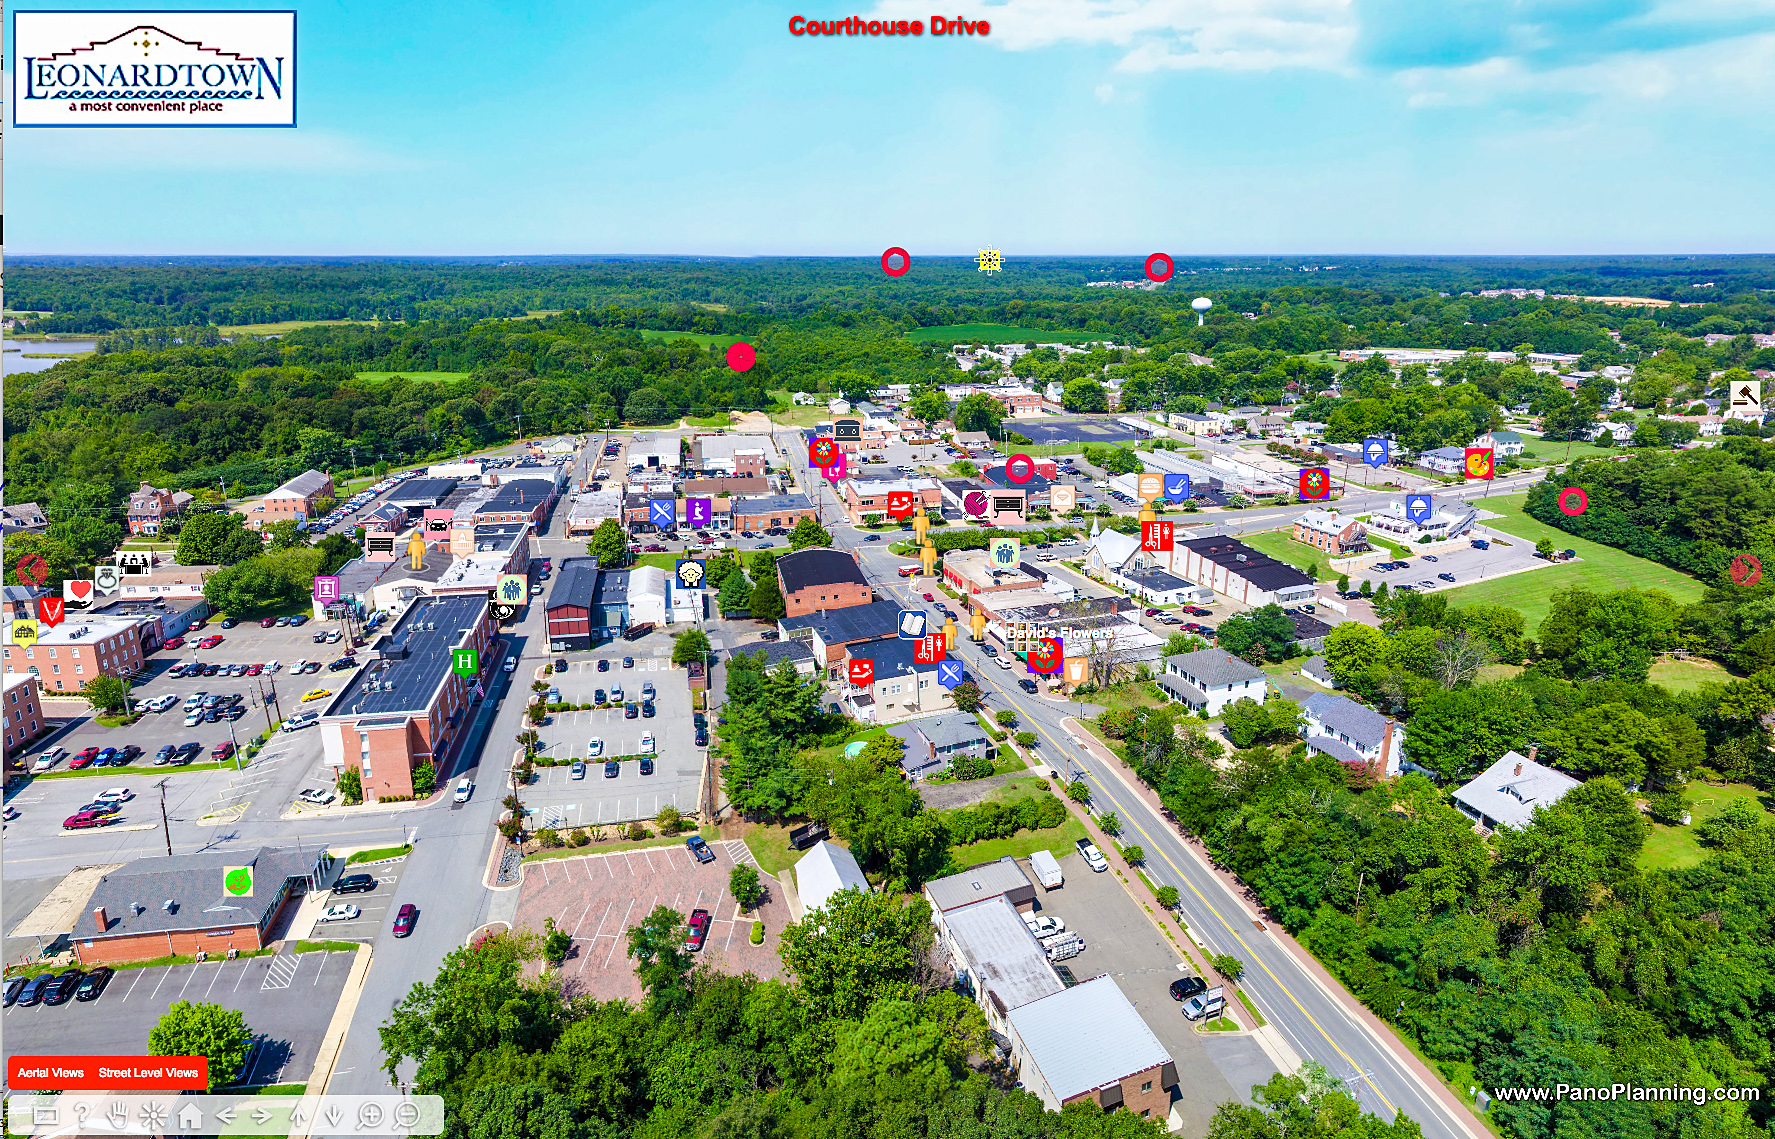 PanoPlanning's Virtual Discovery Tour of Leonardtown, MD.